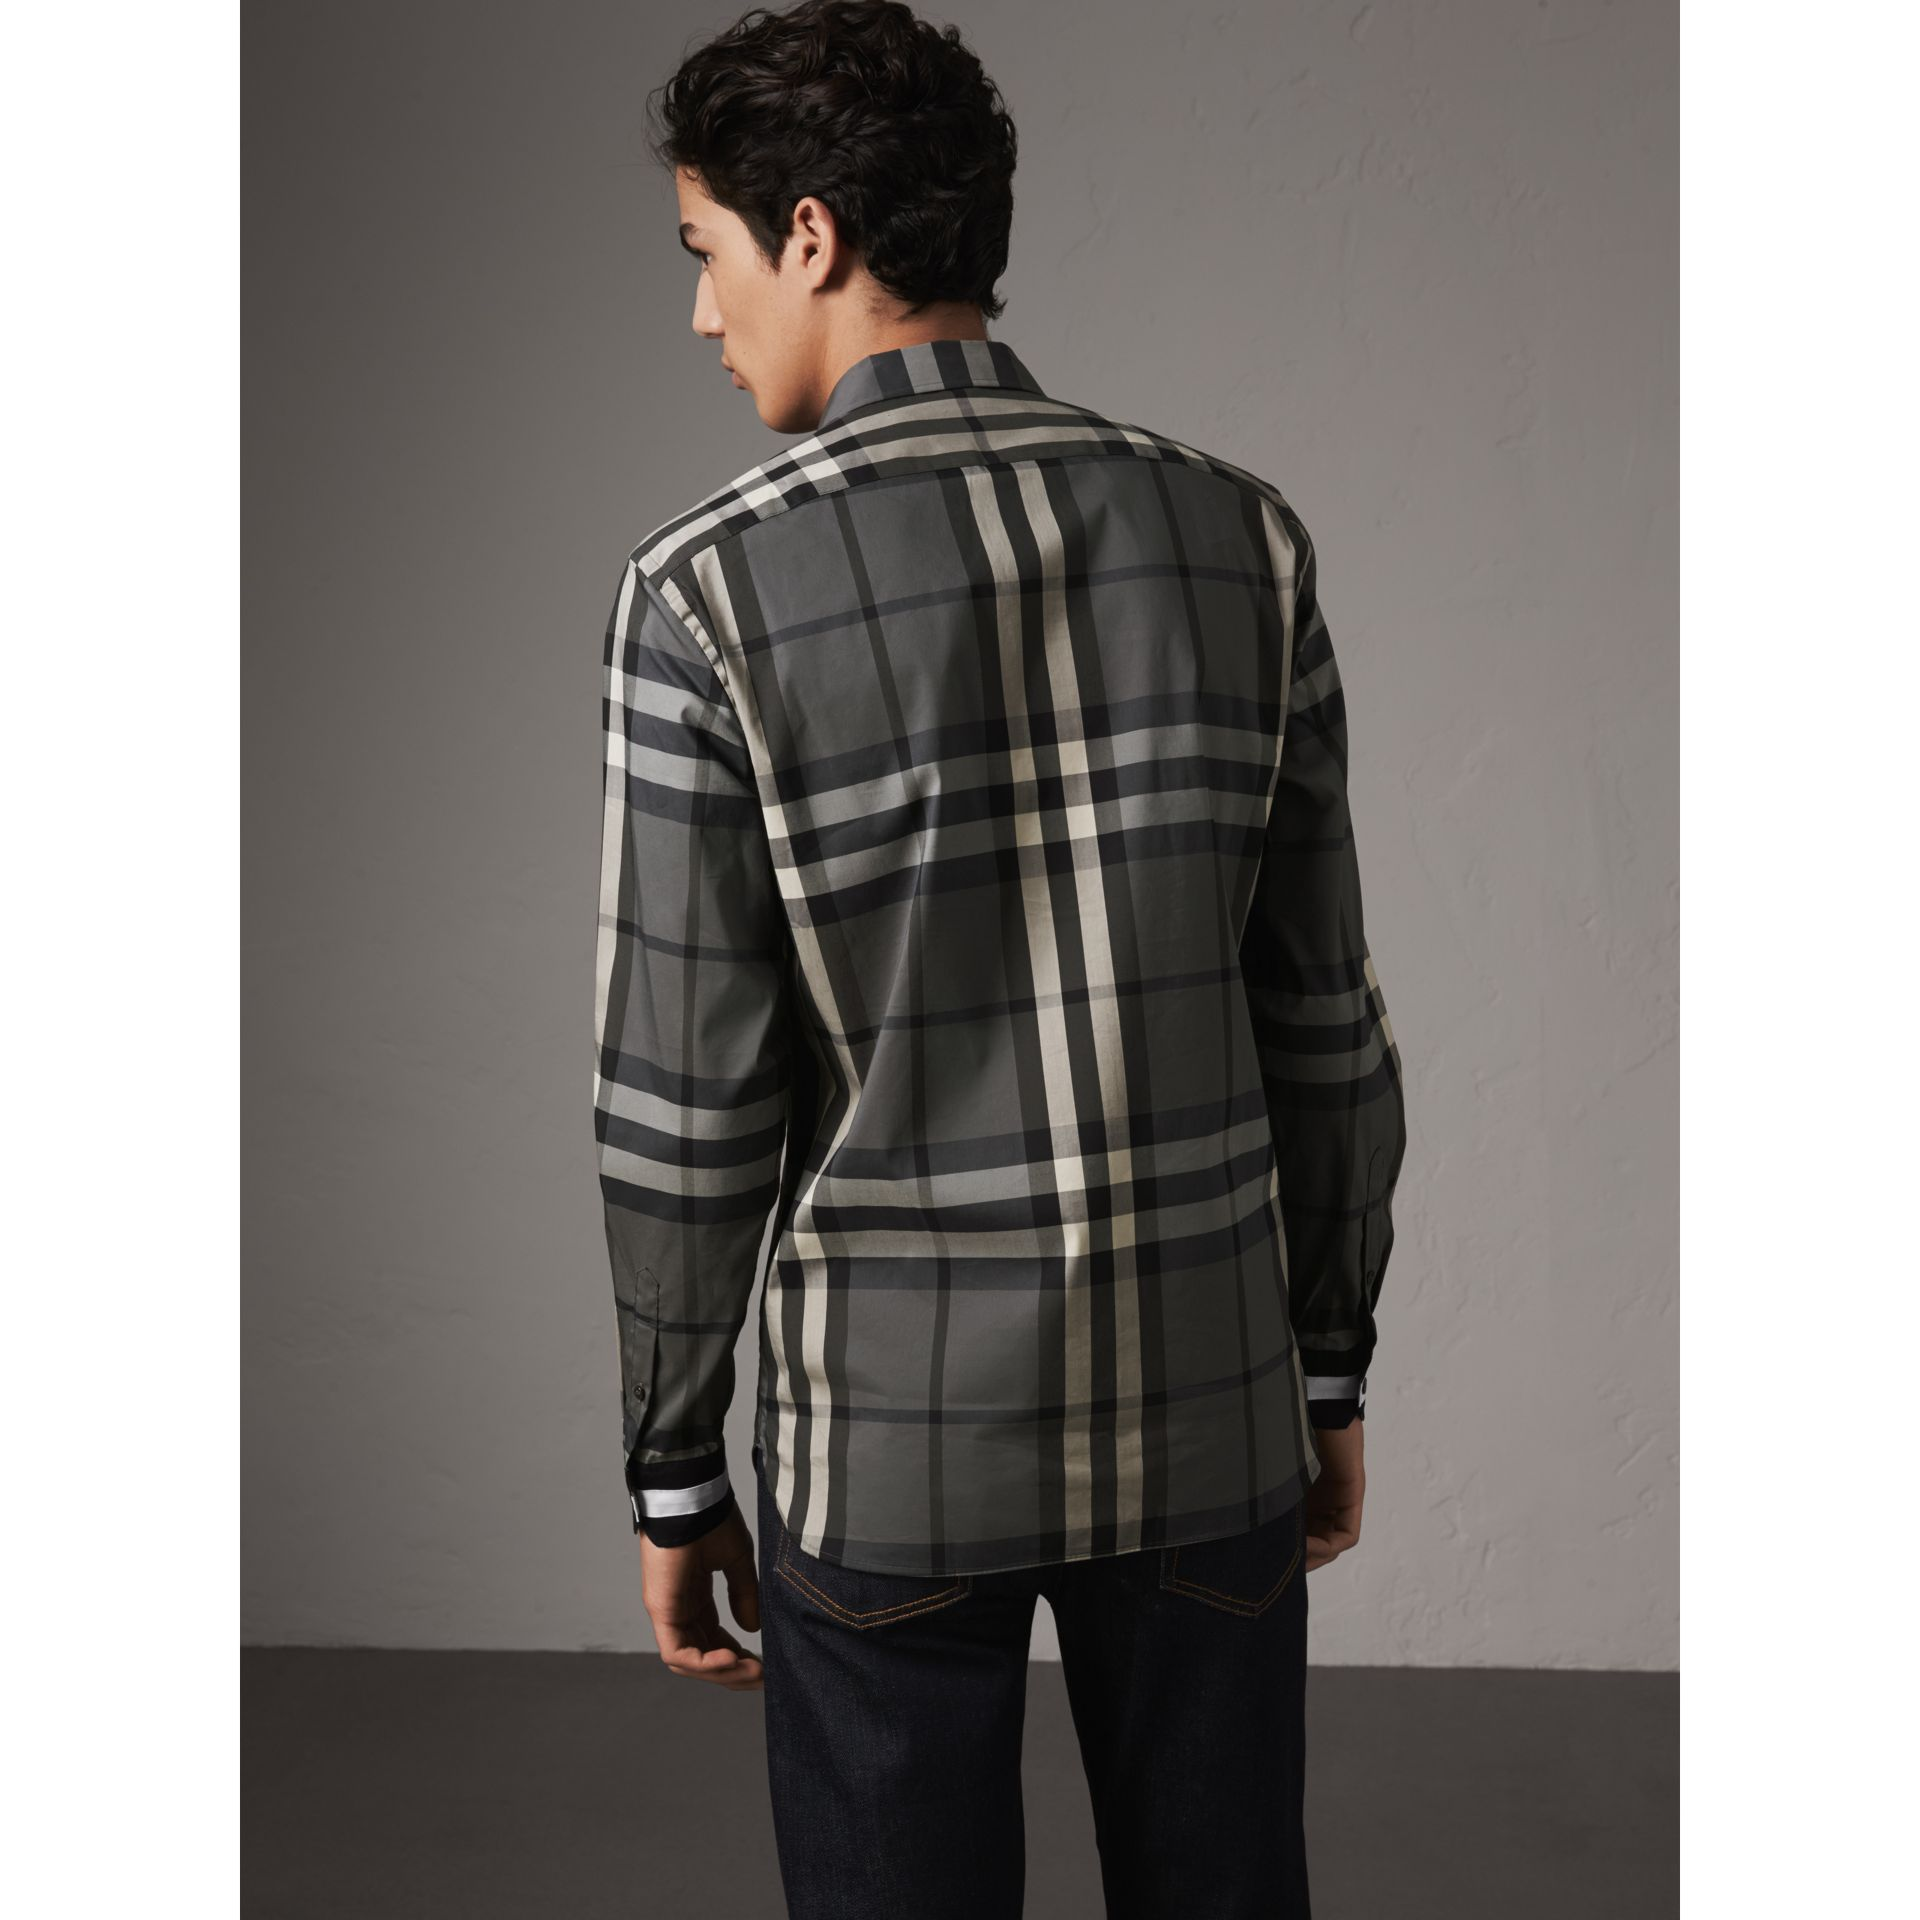 Striped Cuff Check Cotton Blend Shirt in Charcoal - Men | Burberry - gallery image 2